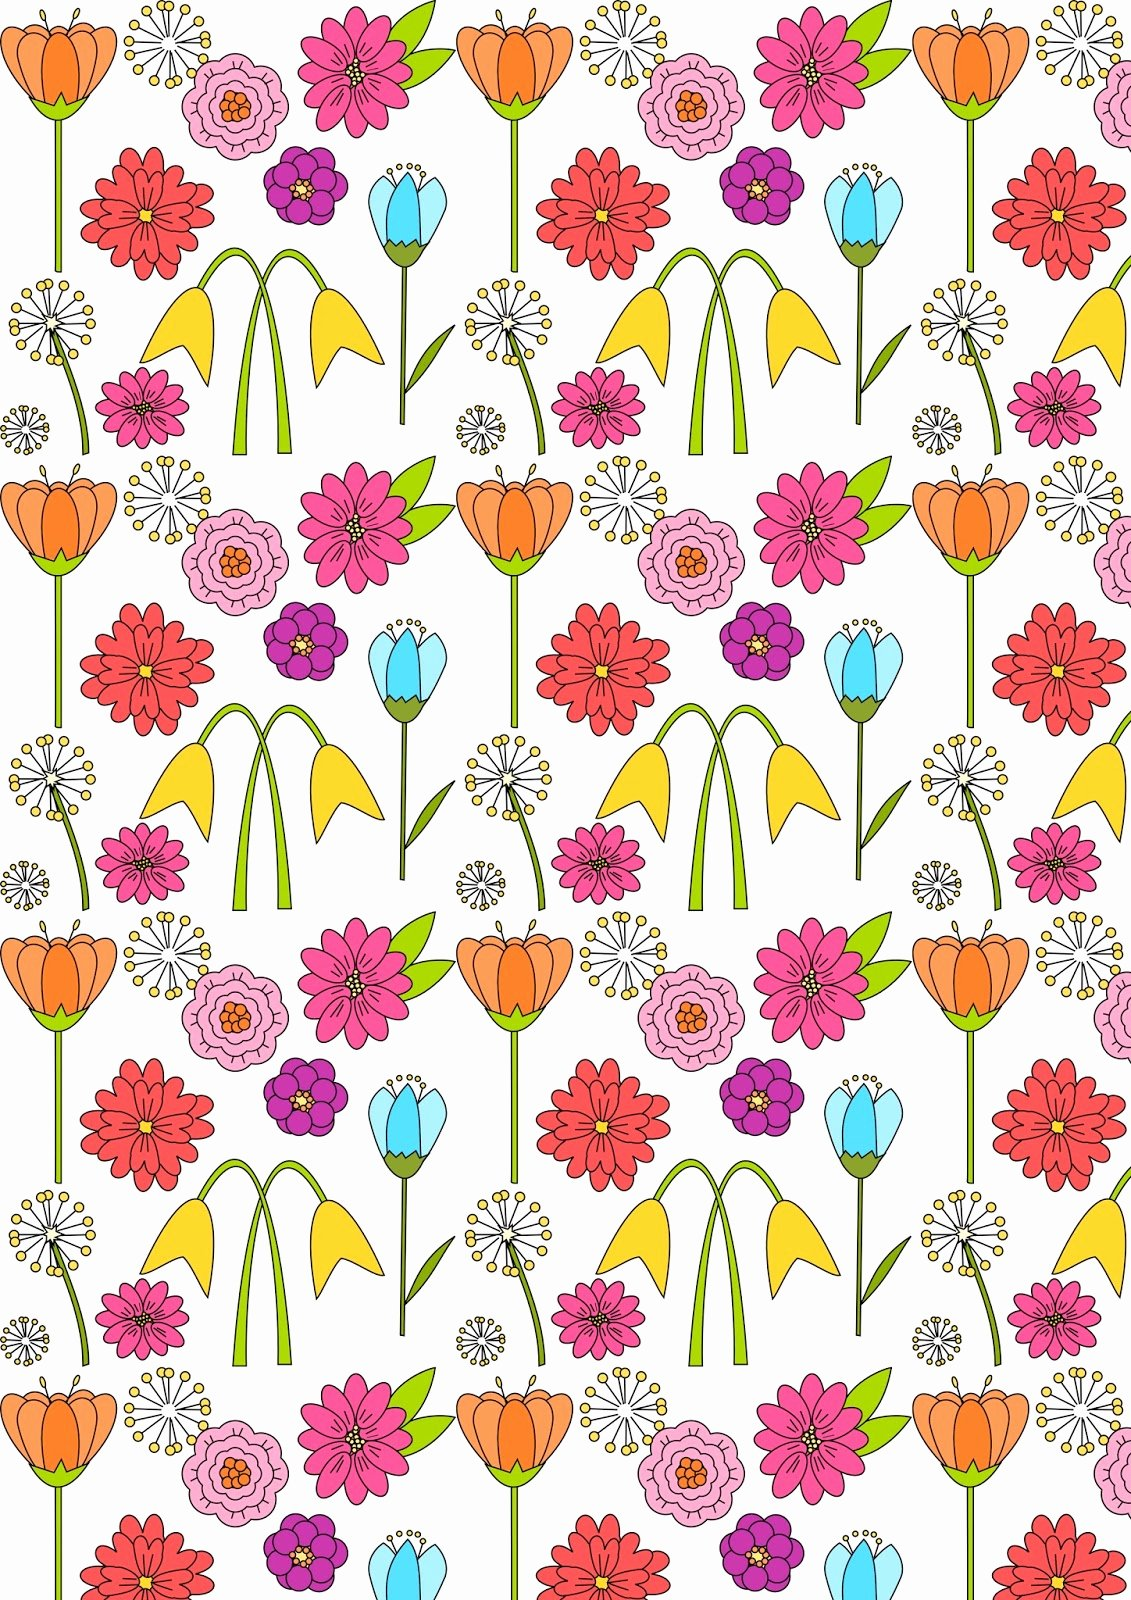 Paper Flower Pattern Printable Beautiful Free Digital Spring Scrapbooking Paper Ausdruckbares